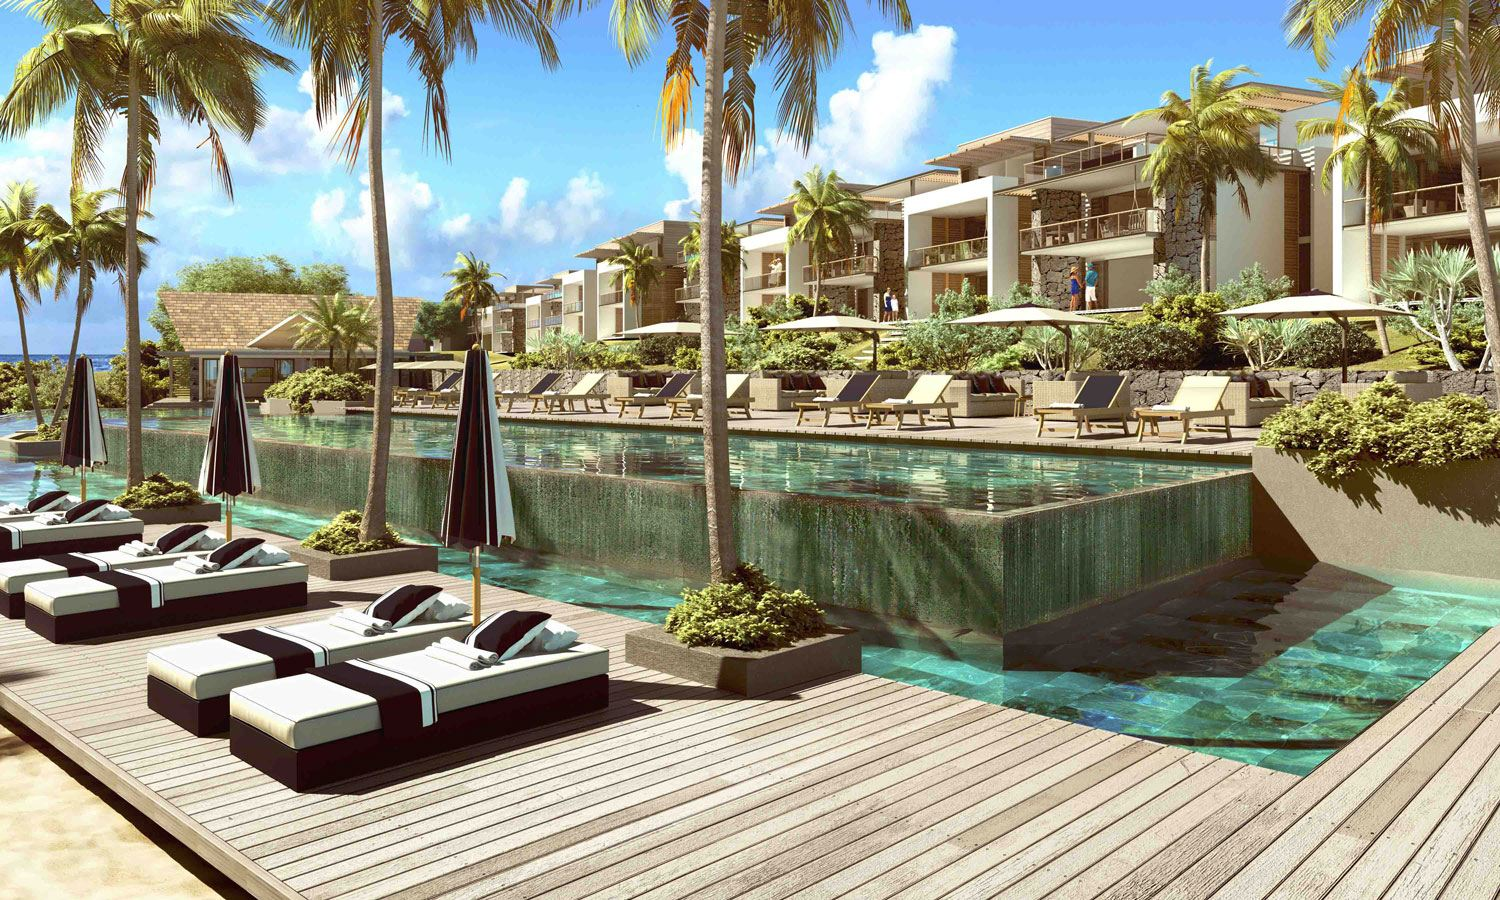 Apartment for Sale at A paradise offering Tax Exemption Scheme Other Mauritius, Other Areas In Mauritius, 30420 Mauritius